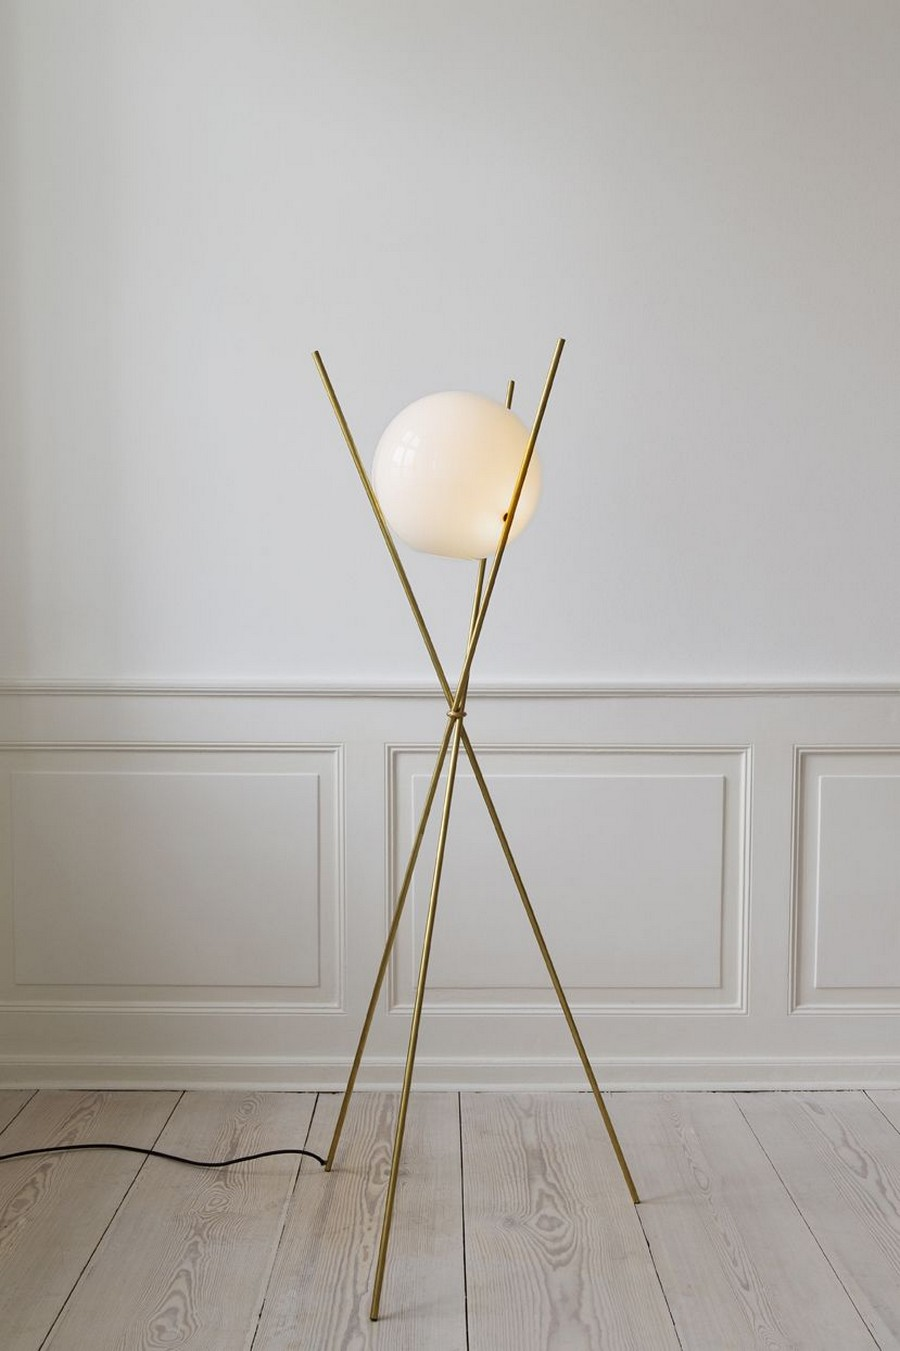 Maison et Objet 2020: Michael Anastassiades is Designer of the Year michael anastassiades Maison et Objet 2020: Michael Anastassiades is Designer of the Year Meet Michael Anastassiades the Designer of the Year at MO 1